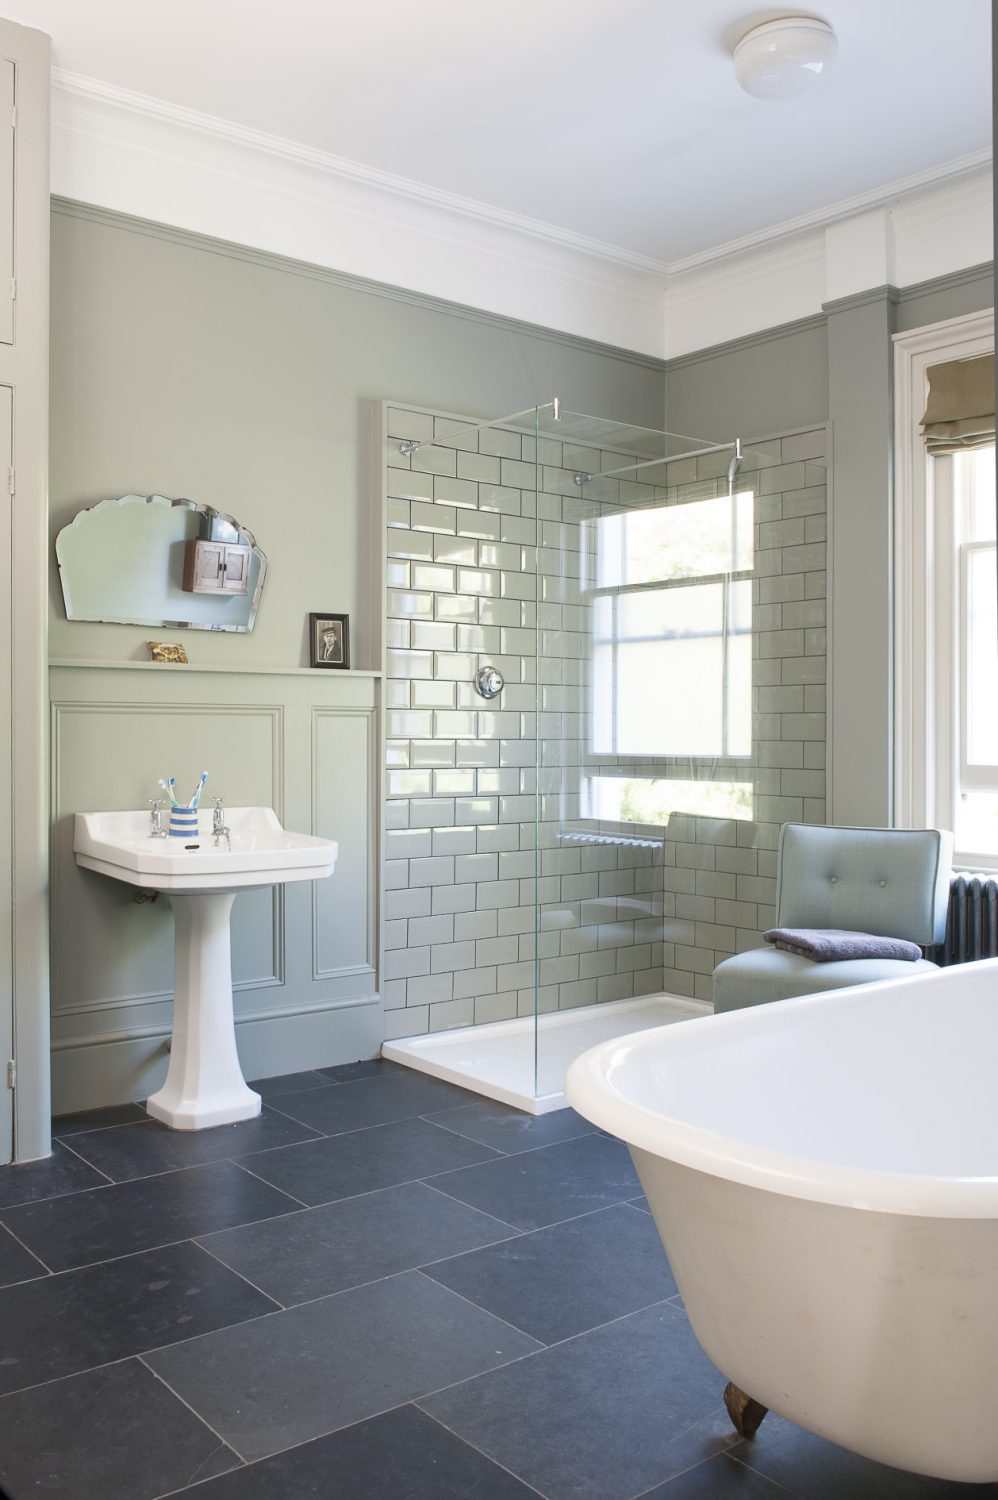 Across the landing, the bathroom has been painted F&B's Pigeon that neatly emphasises the handsome wooden wall panelling